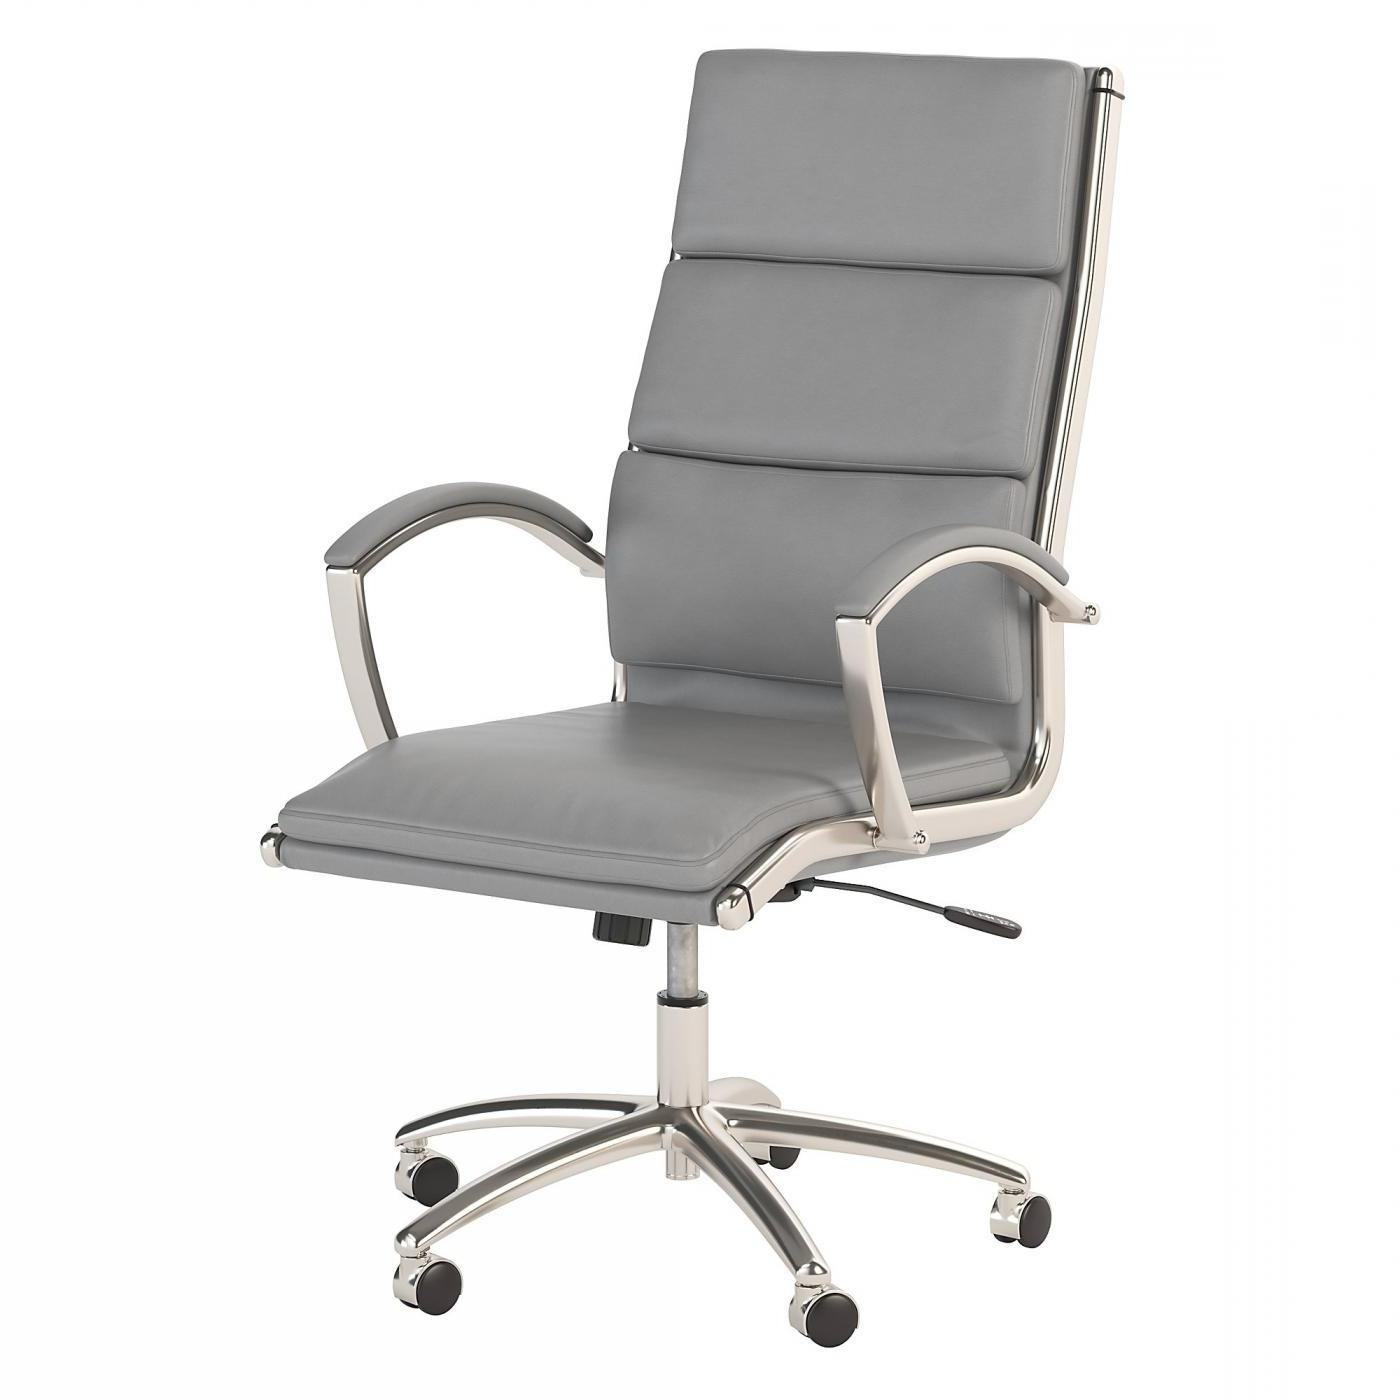 <font color=#c60><b>BUSH BUSINESS FURNITURE MODELO HIGH BACK LEATHER EXECUTIVE OFFICE CHAIR #EH-CH1701LGL-03. FREE SHIPPING:</font></b> </font></b></font></b>